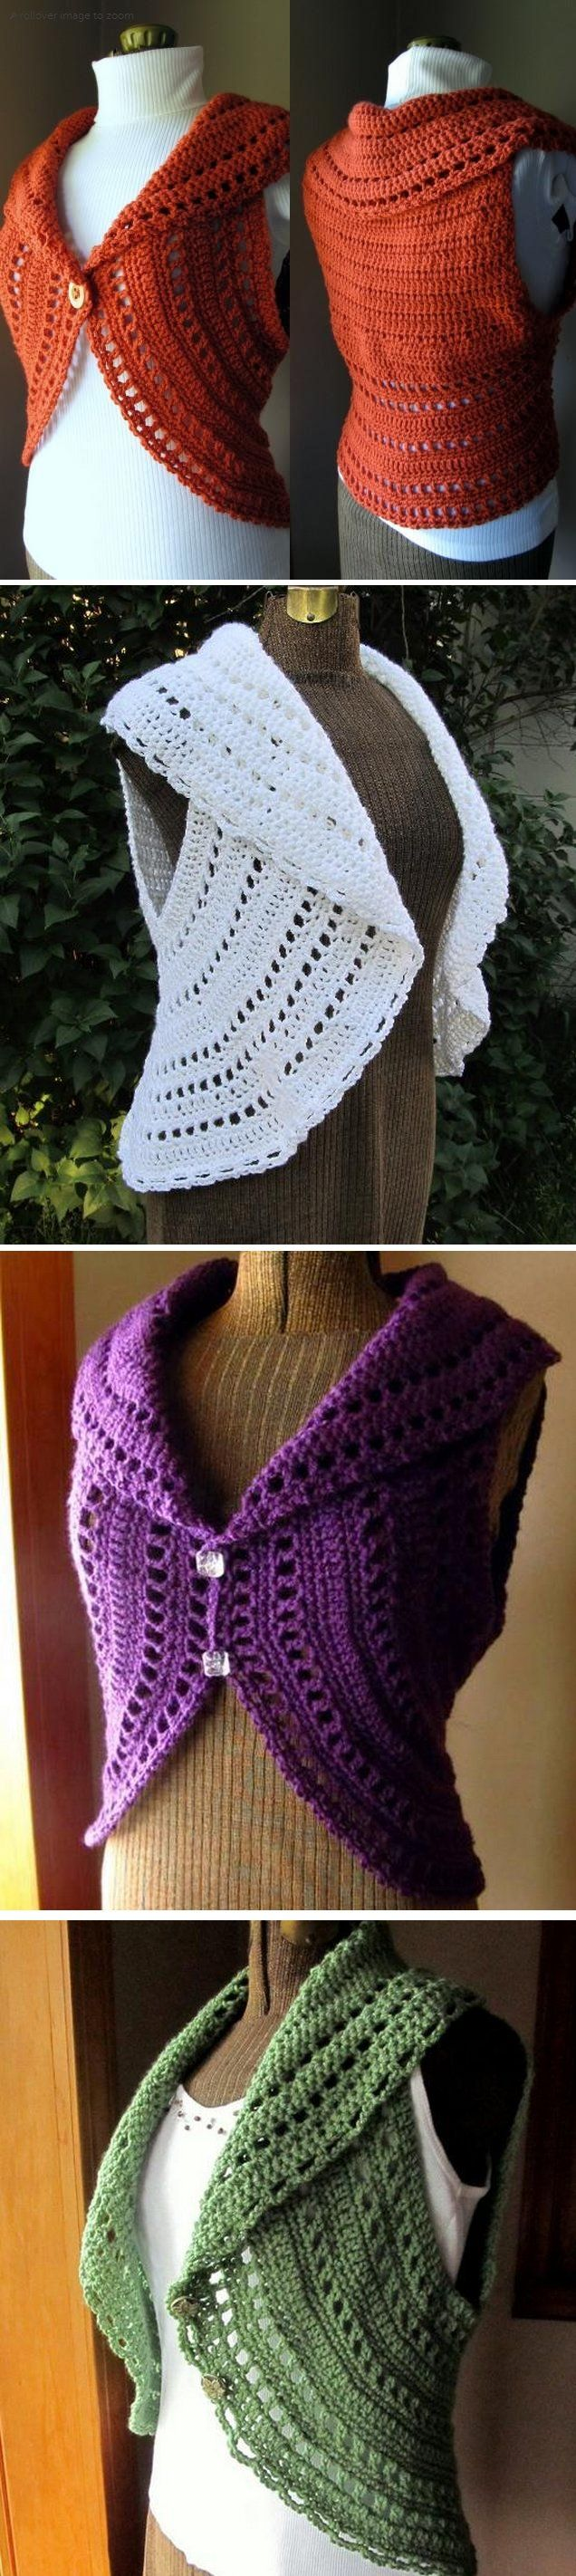 Crochet Ladies Circle Vest or Shrug Pattern | Craft ideas ...